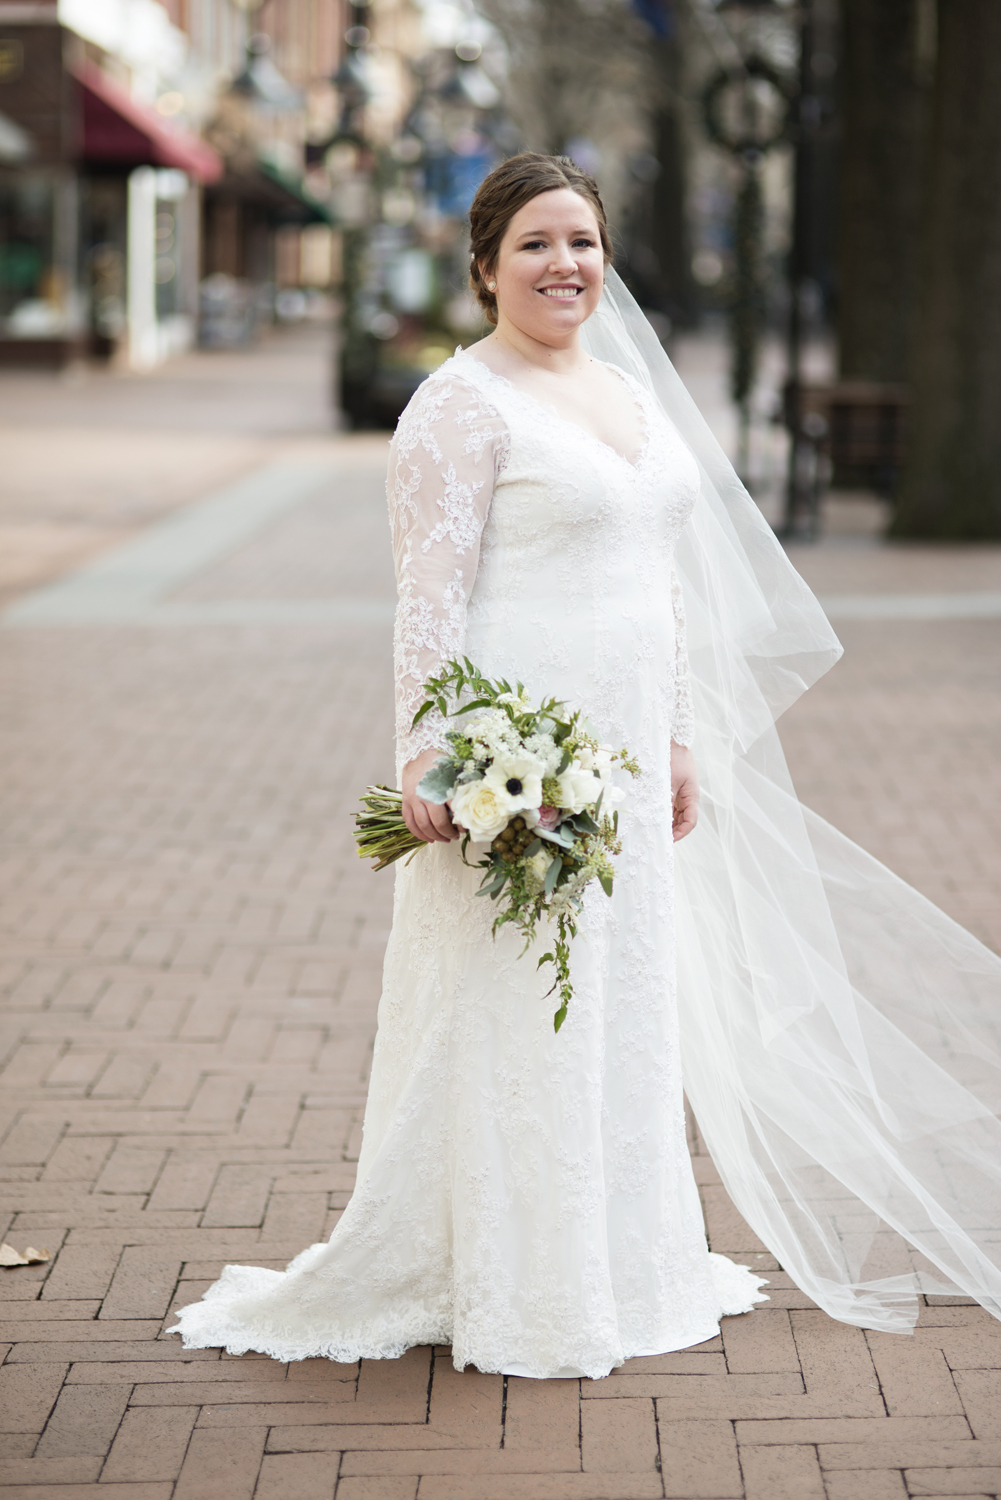 Bridal portraits at an outdoor downtown mall